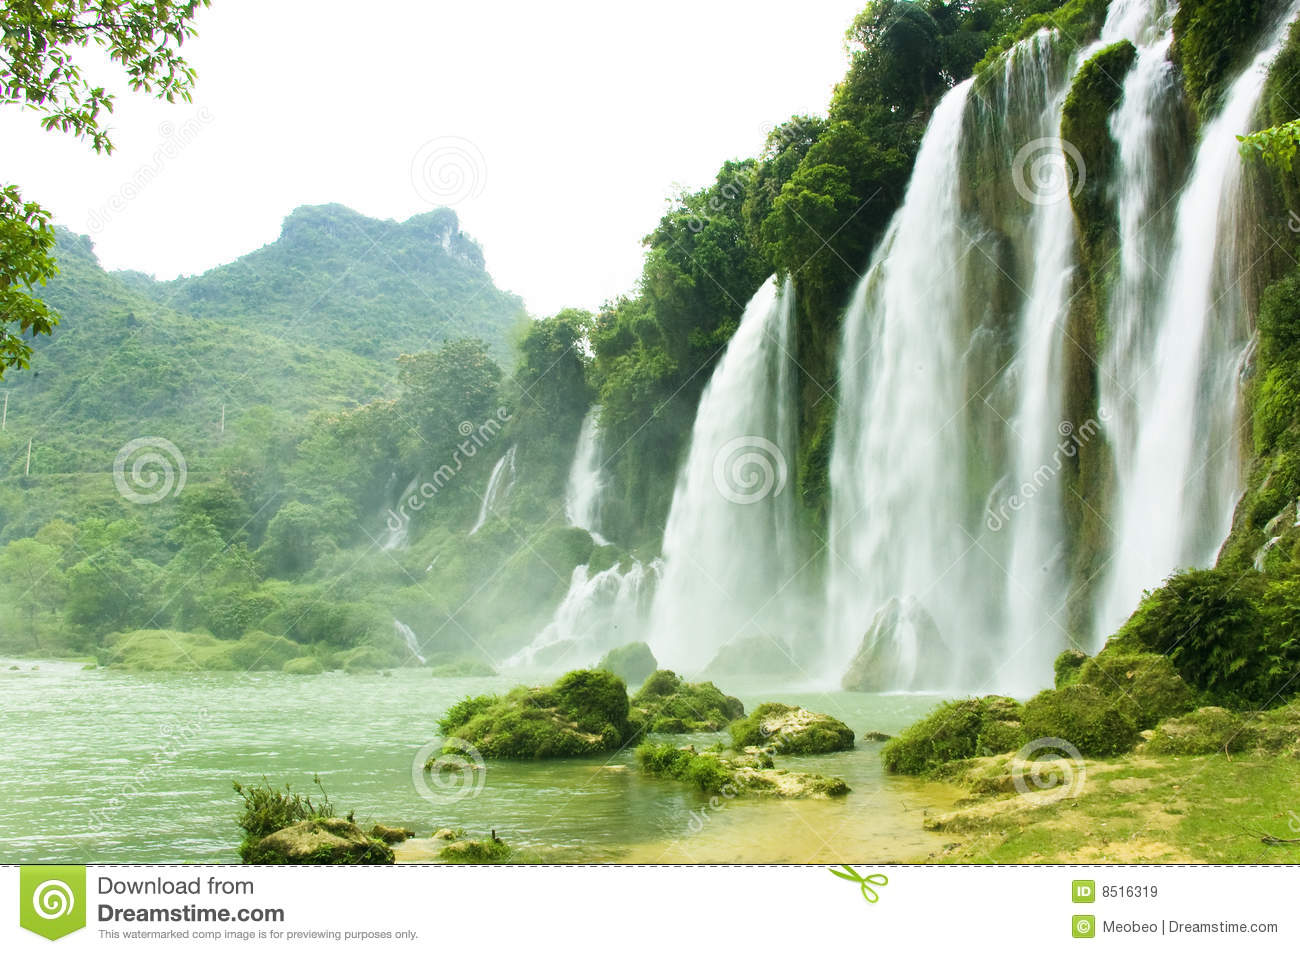 Nature Images 2mb: Ban Gioc Waterfall In Vietnam Stock Image